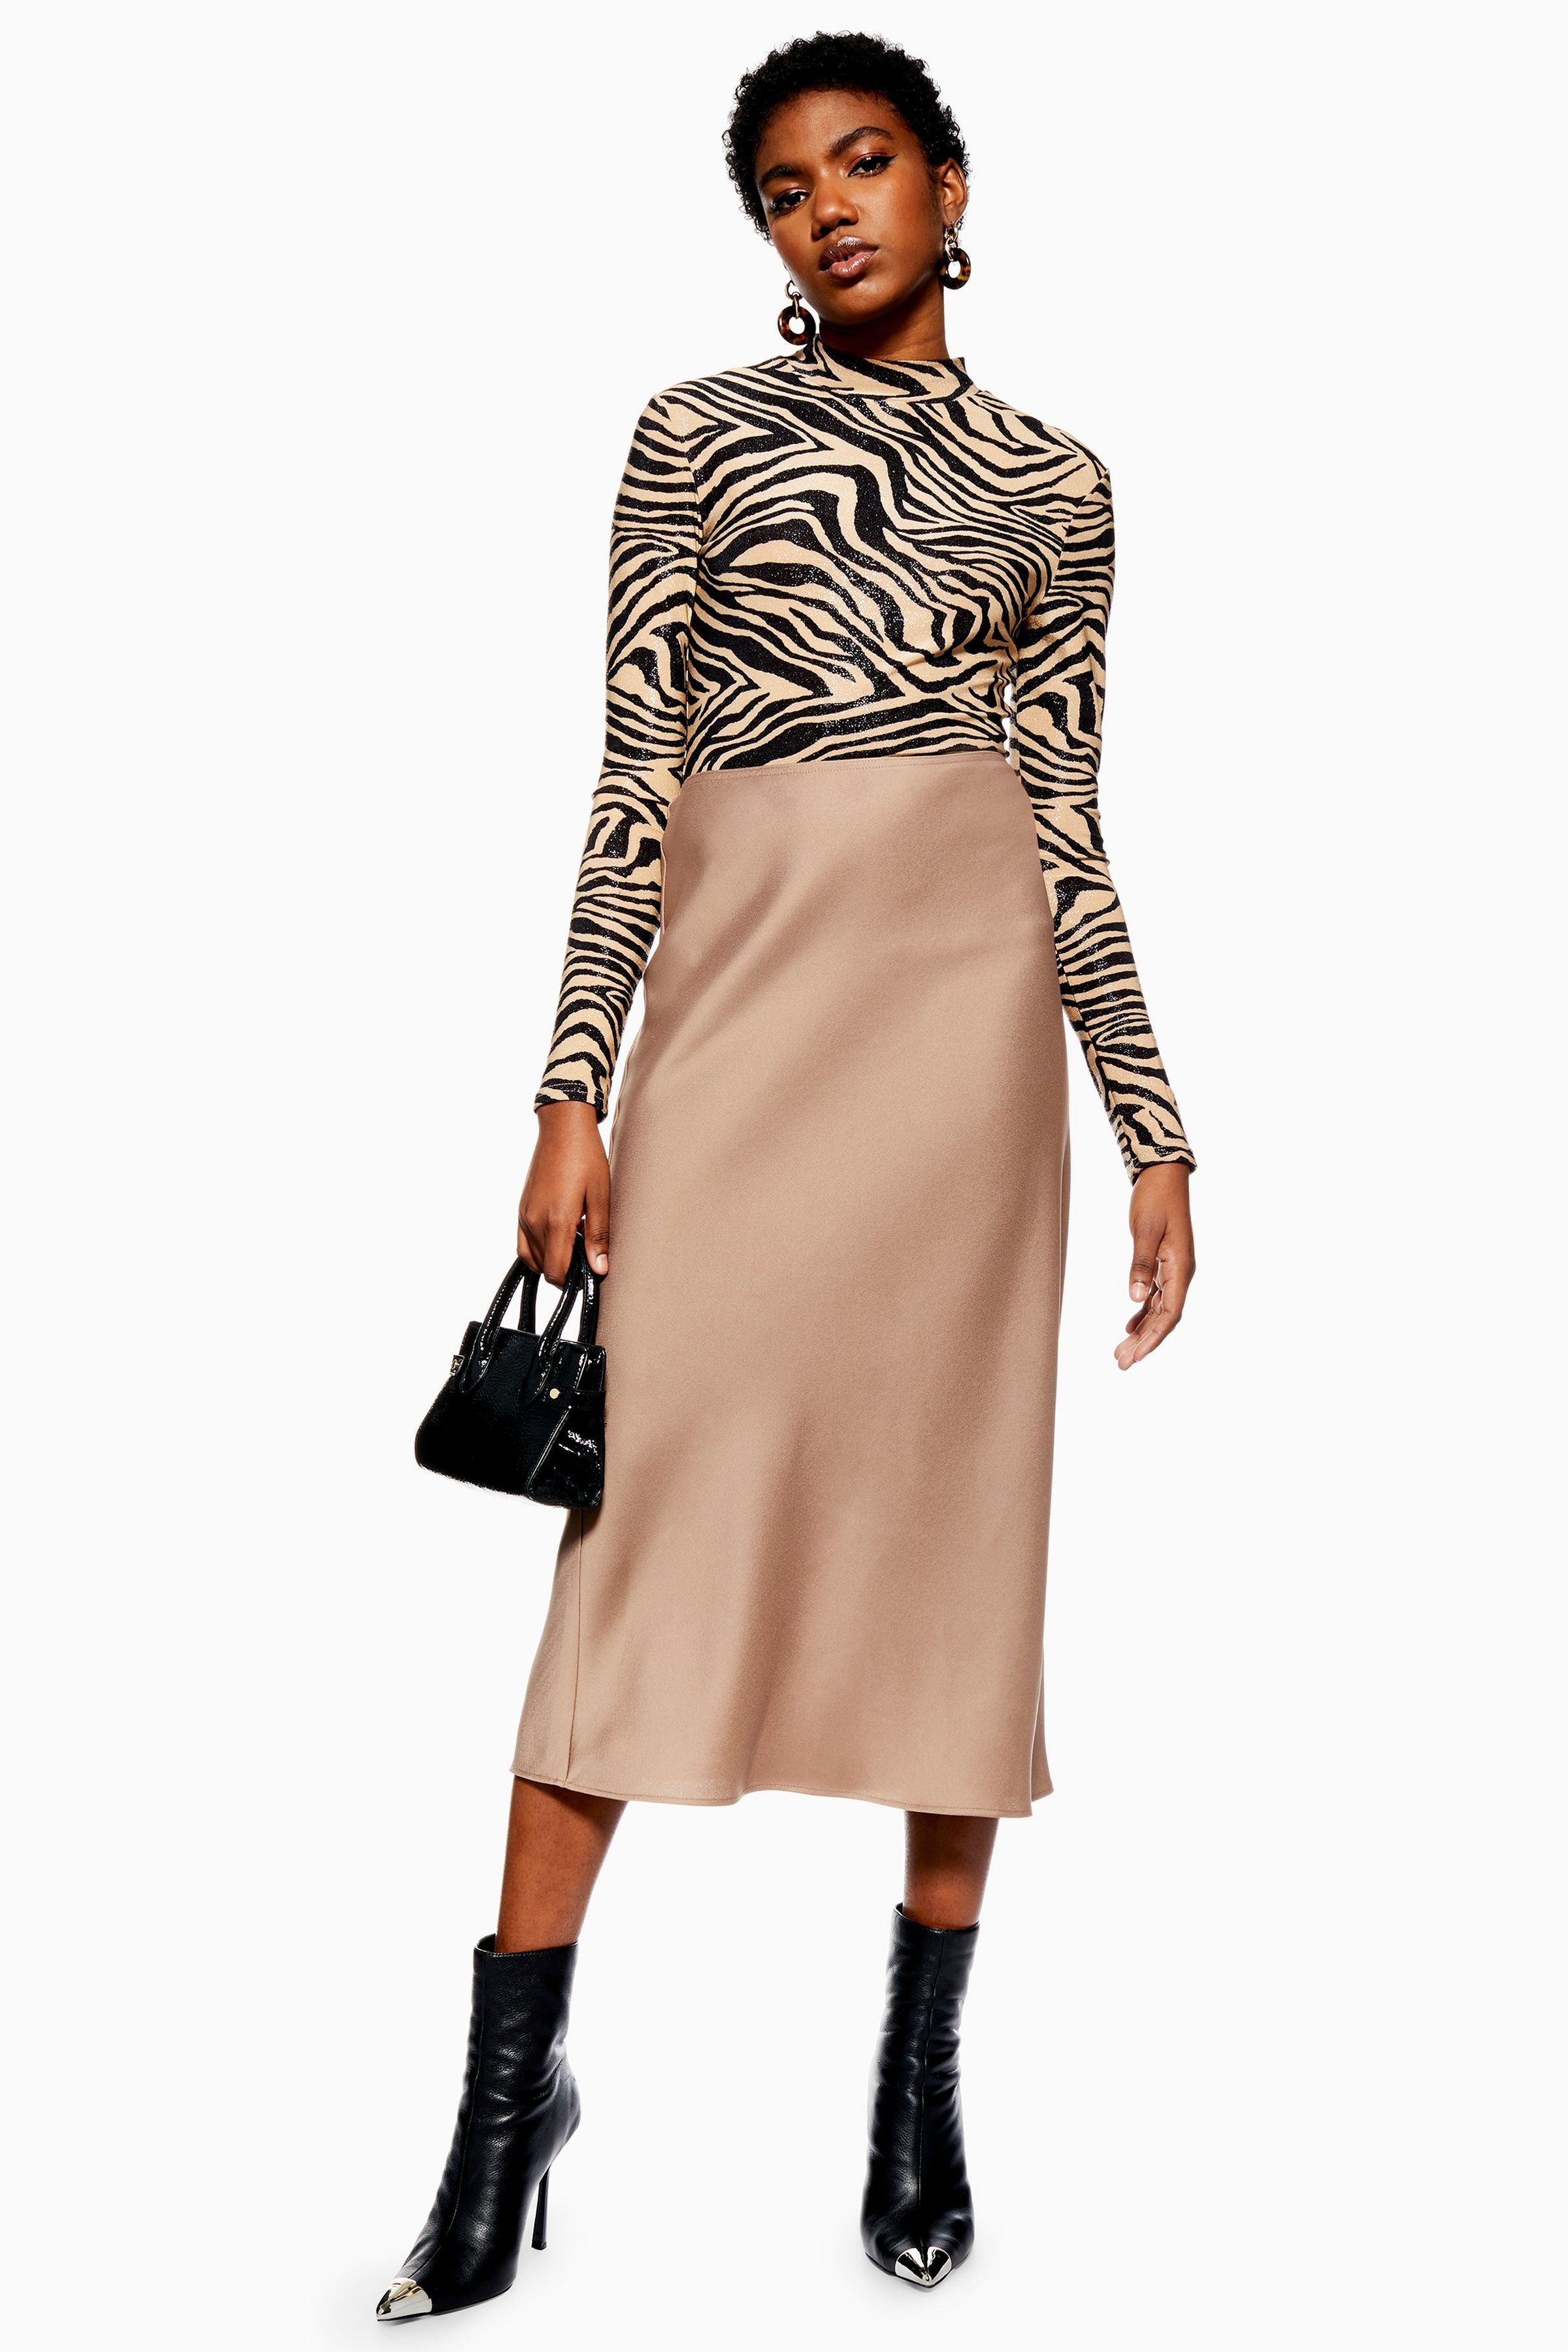 e4f776c00adf Carousel Image 0 Beige Skirt Outfit, Skirt Outfits, Midi Skirt Outfit,  Casual Outfits